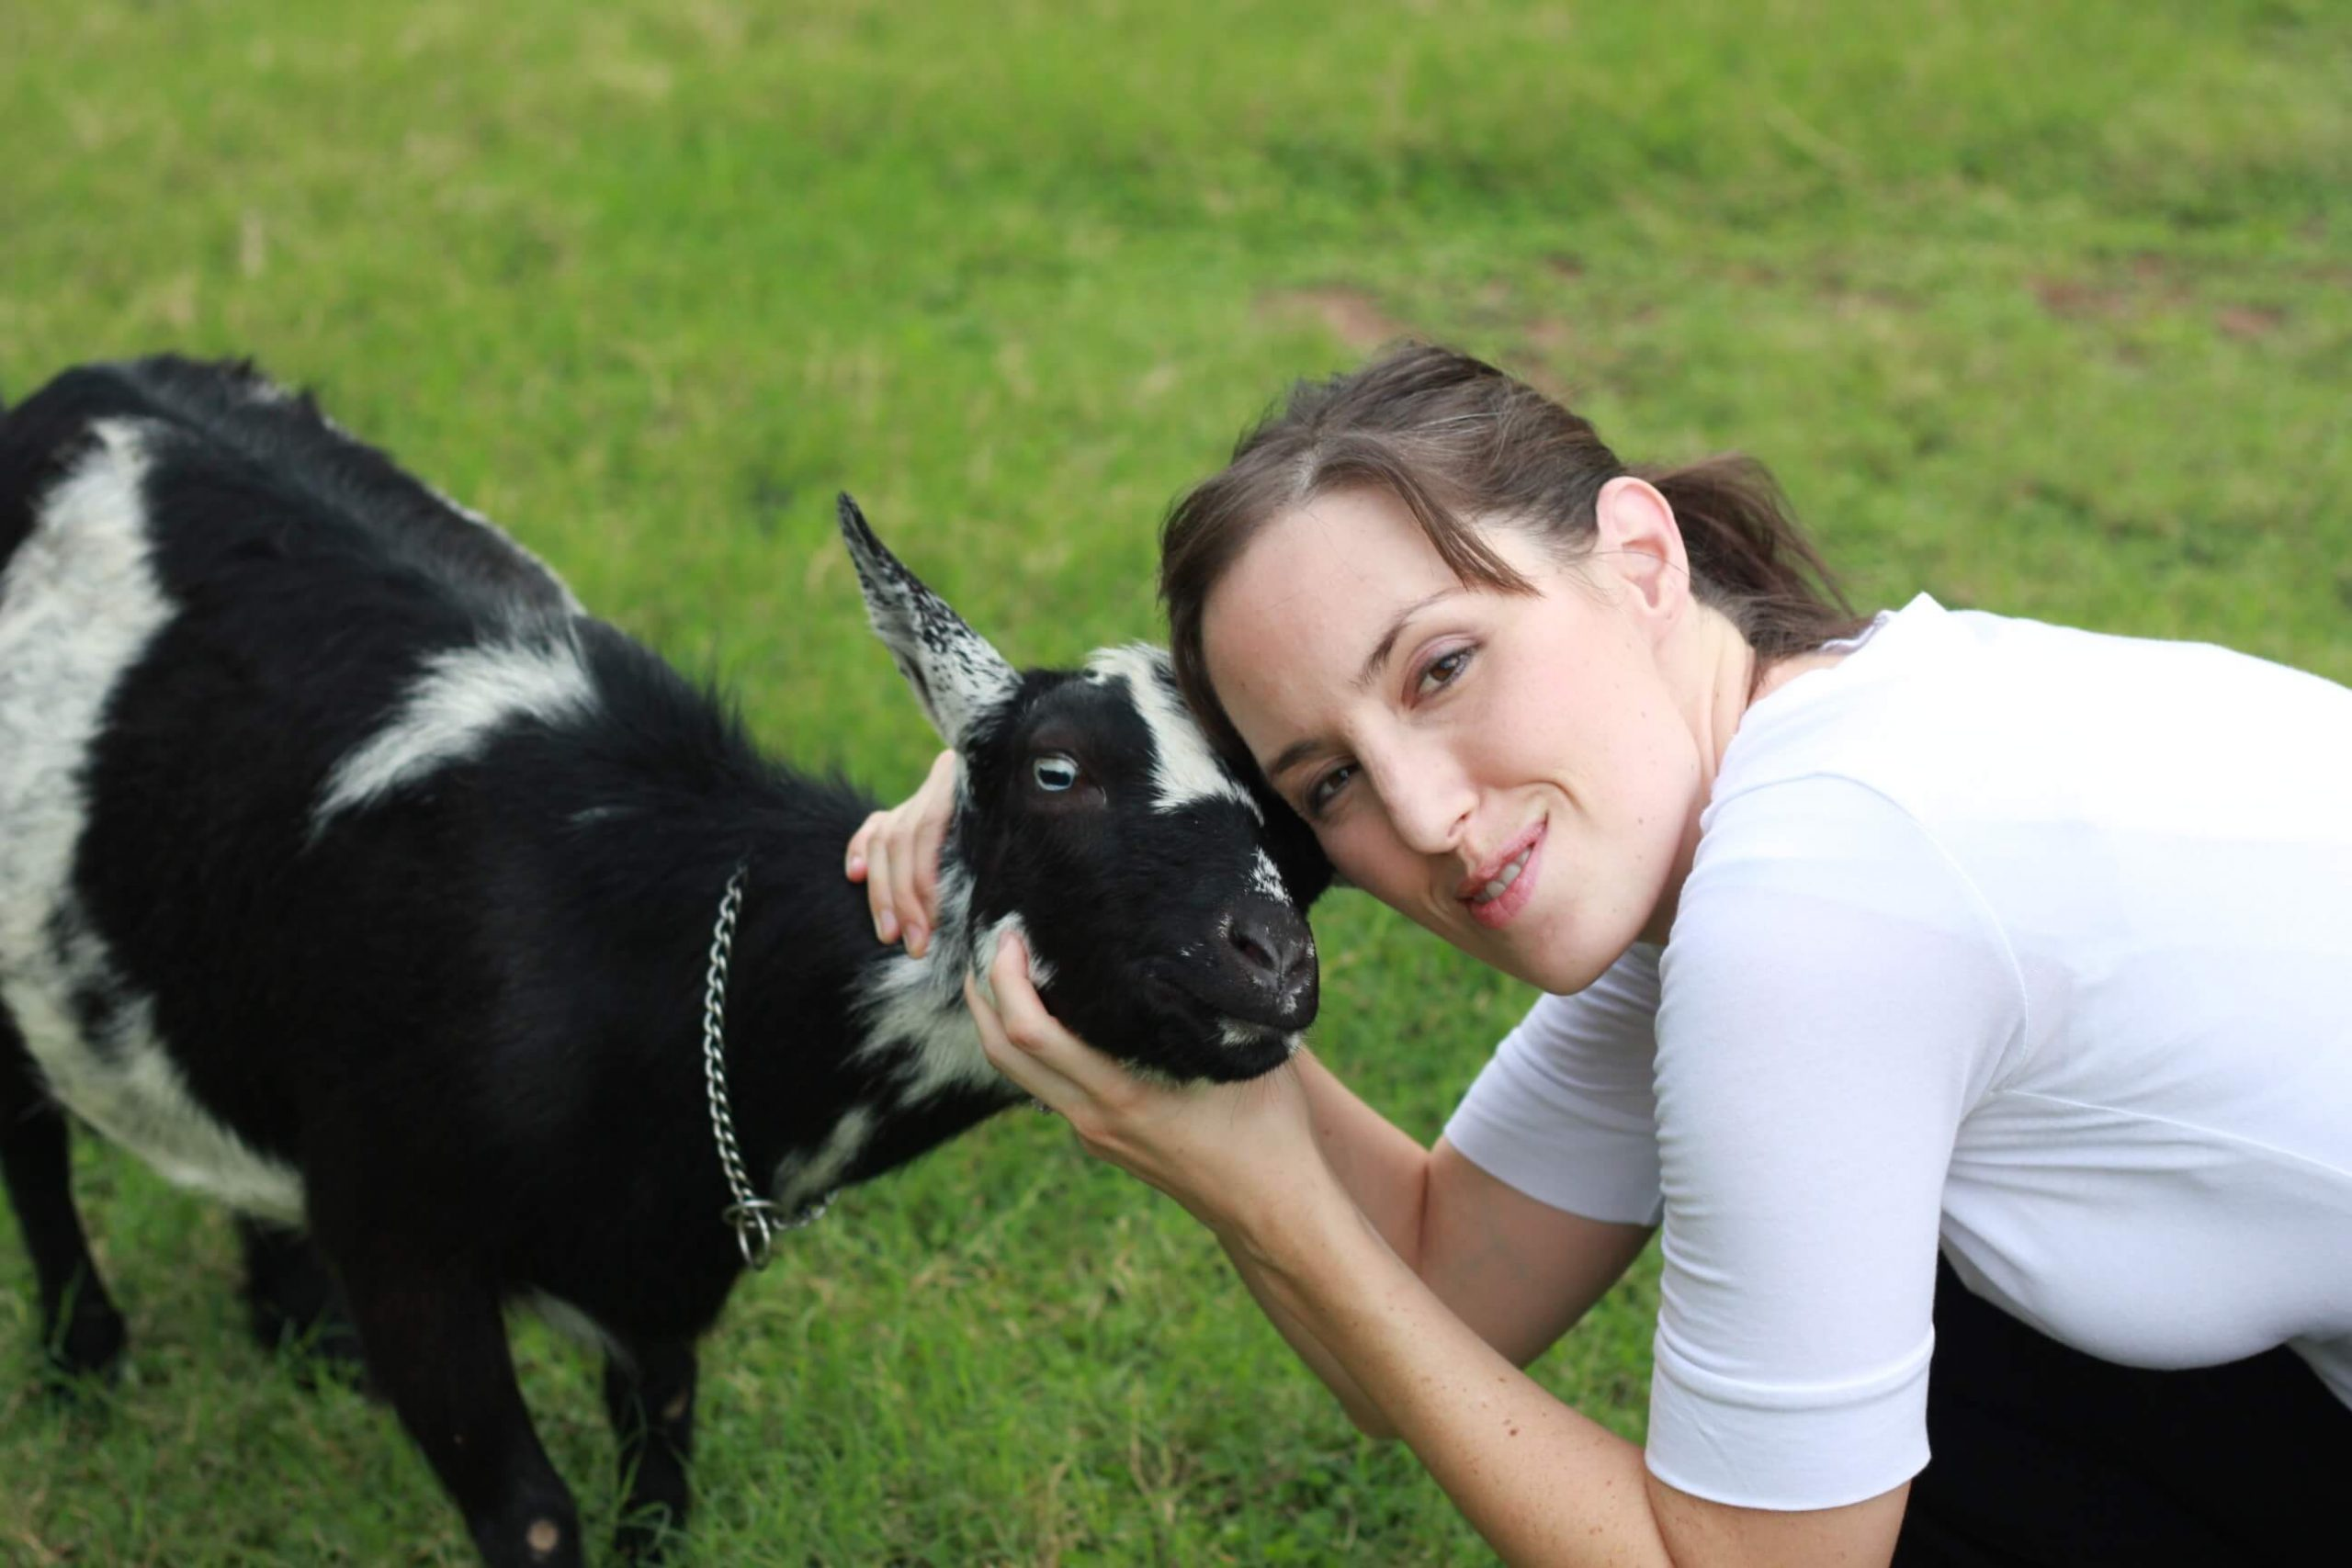 woman with black goat